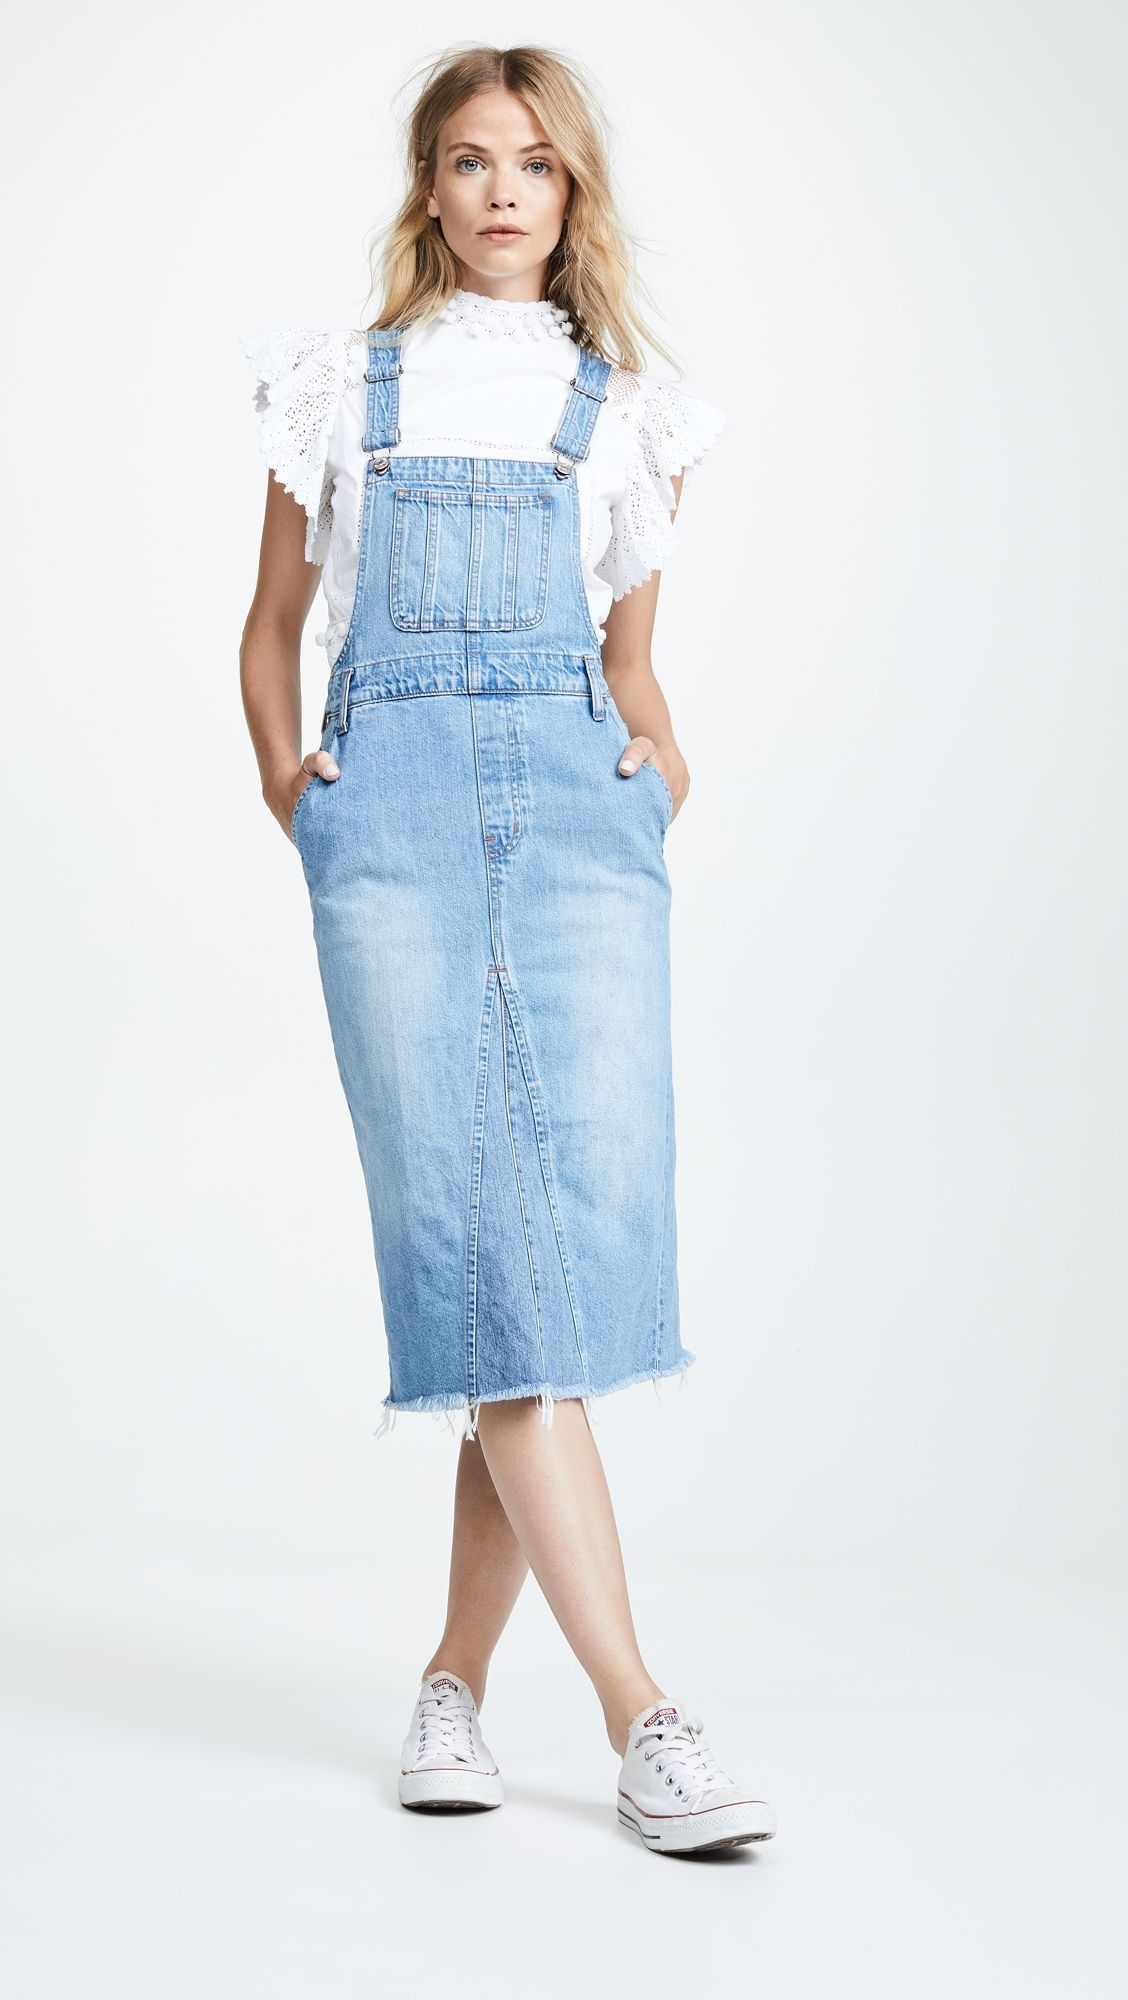 88a0989ed169cb Reconstructed Overall Jumper in 2019 | Products | Denim jumper dress ...